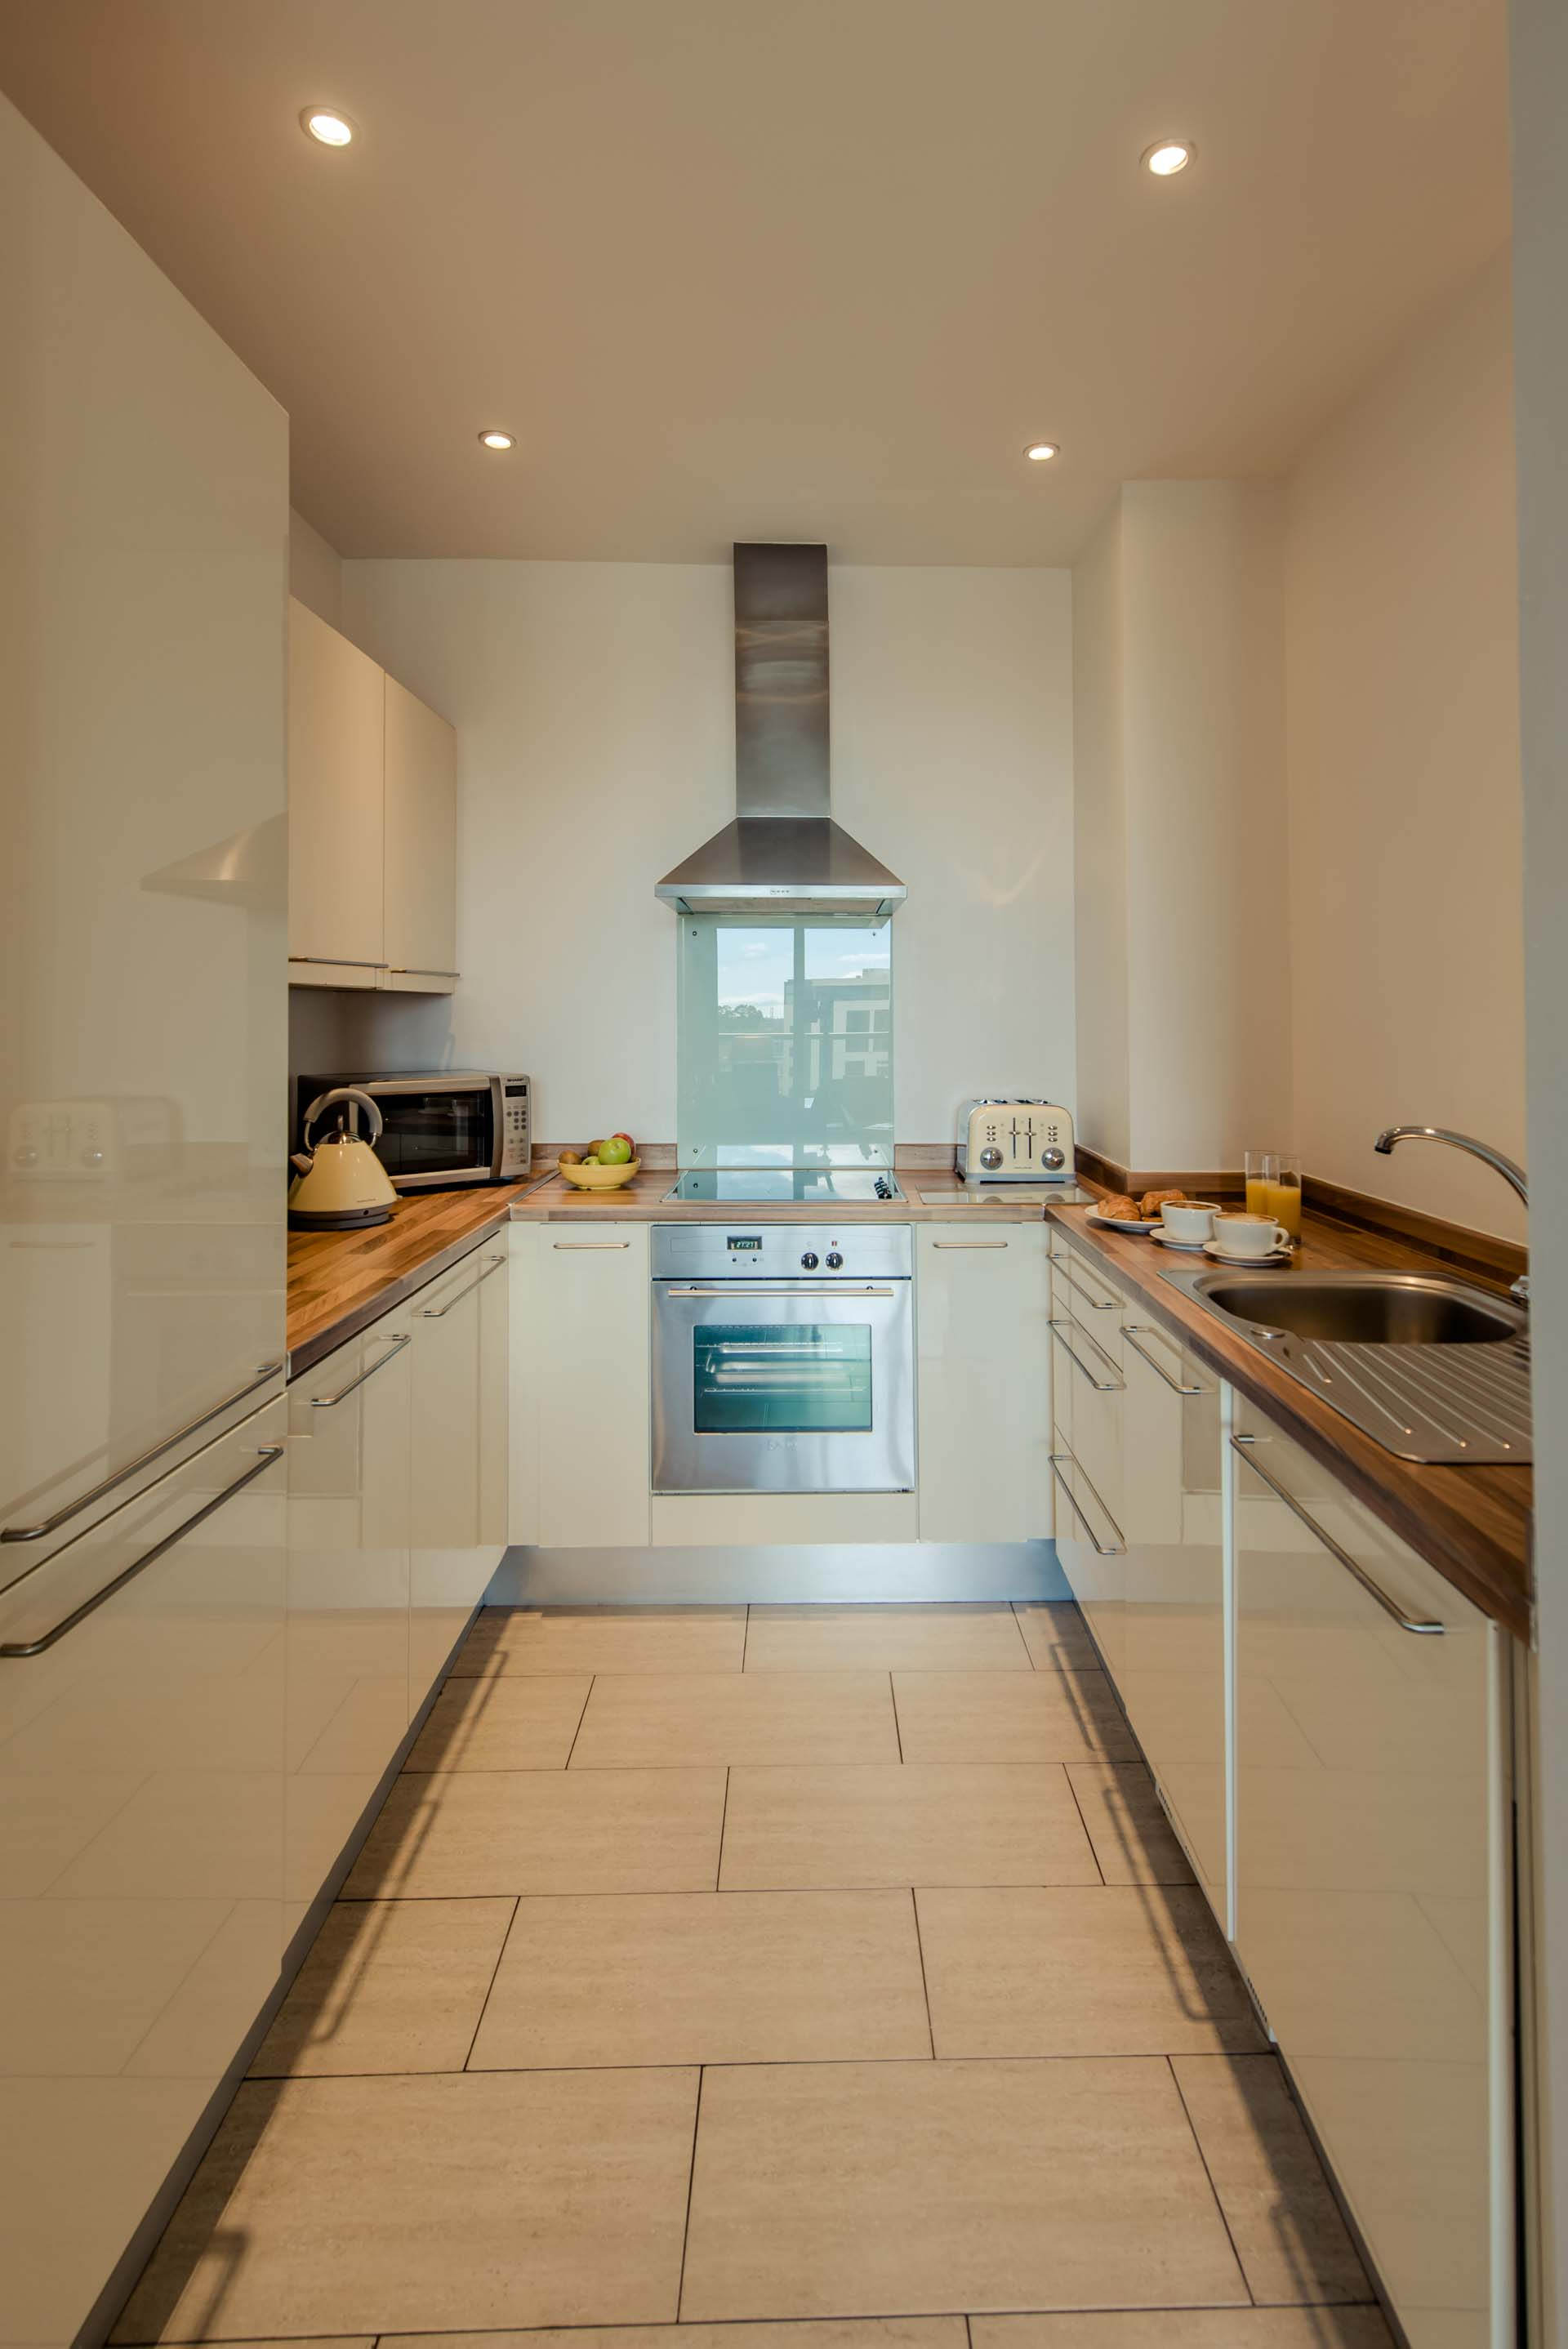 PREMIER SUITES Dublin Sandyford kitchen shot